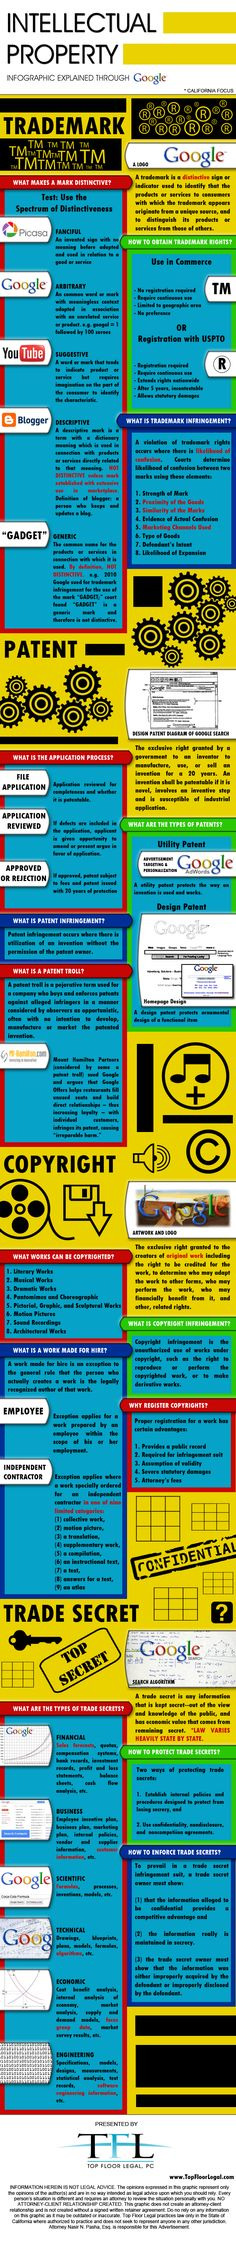 Very useful - a visual summary of the four types of intellectual property